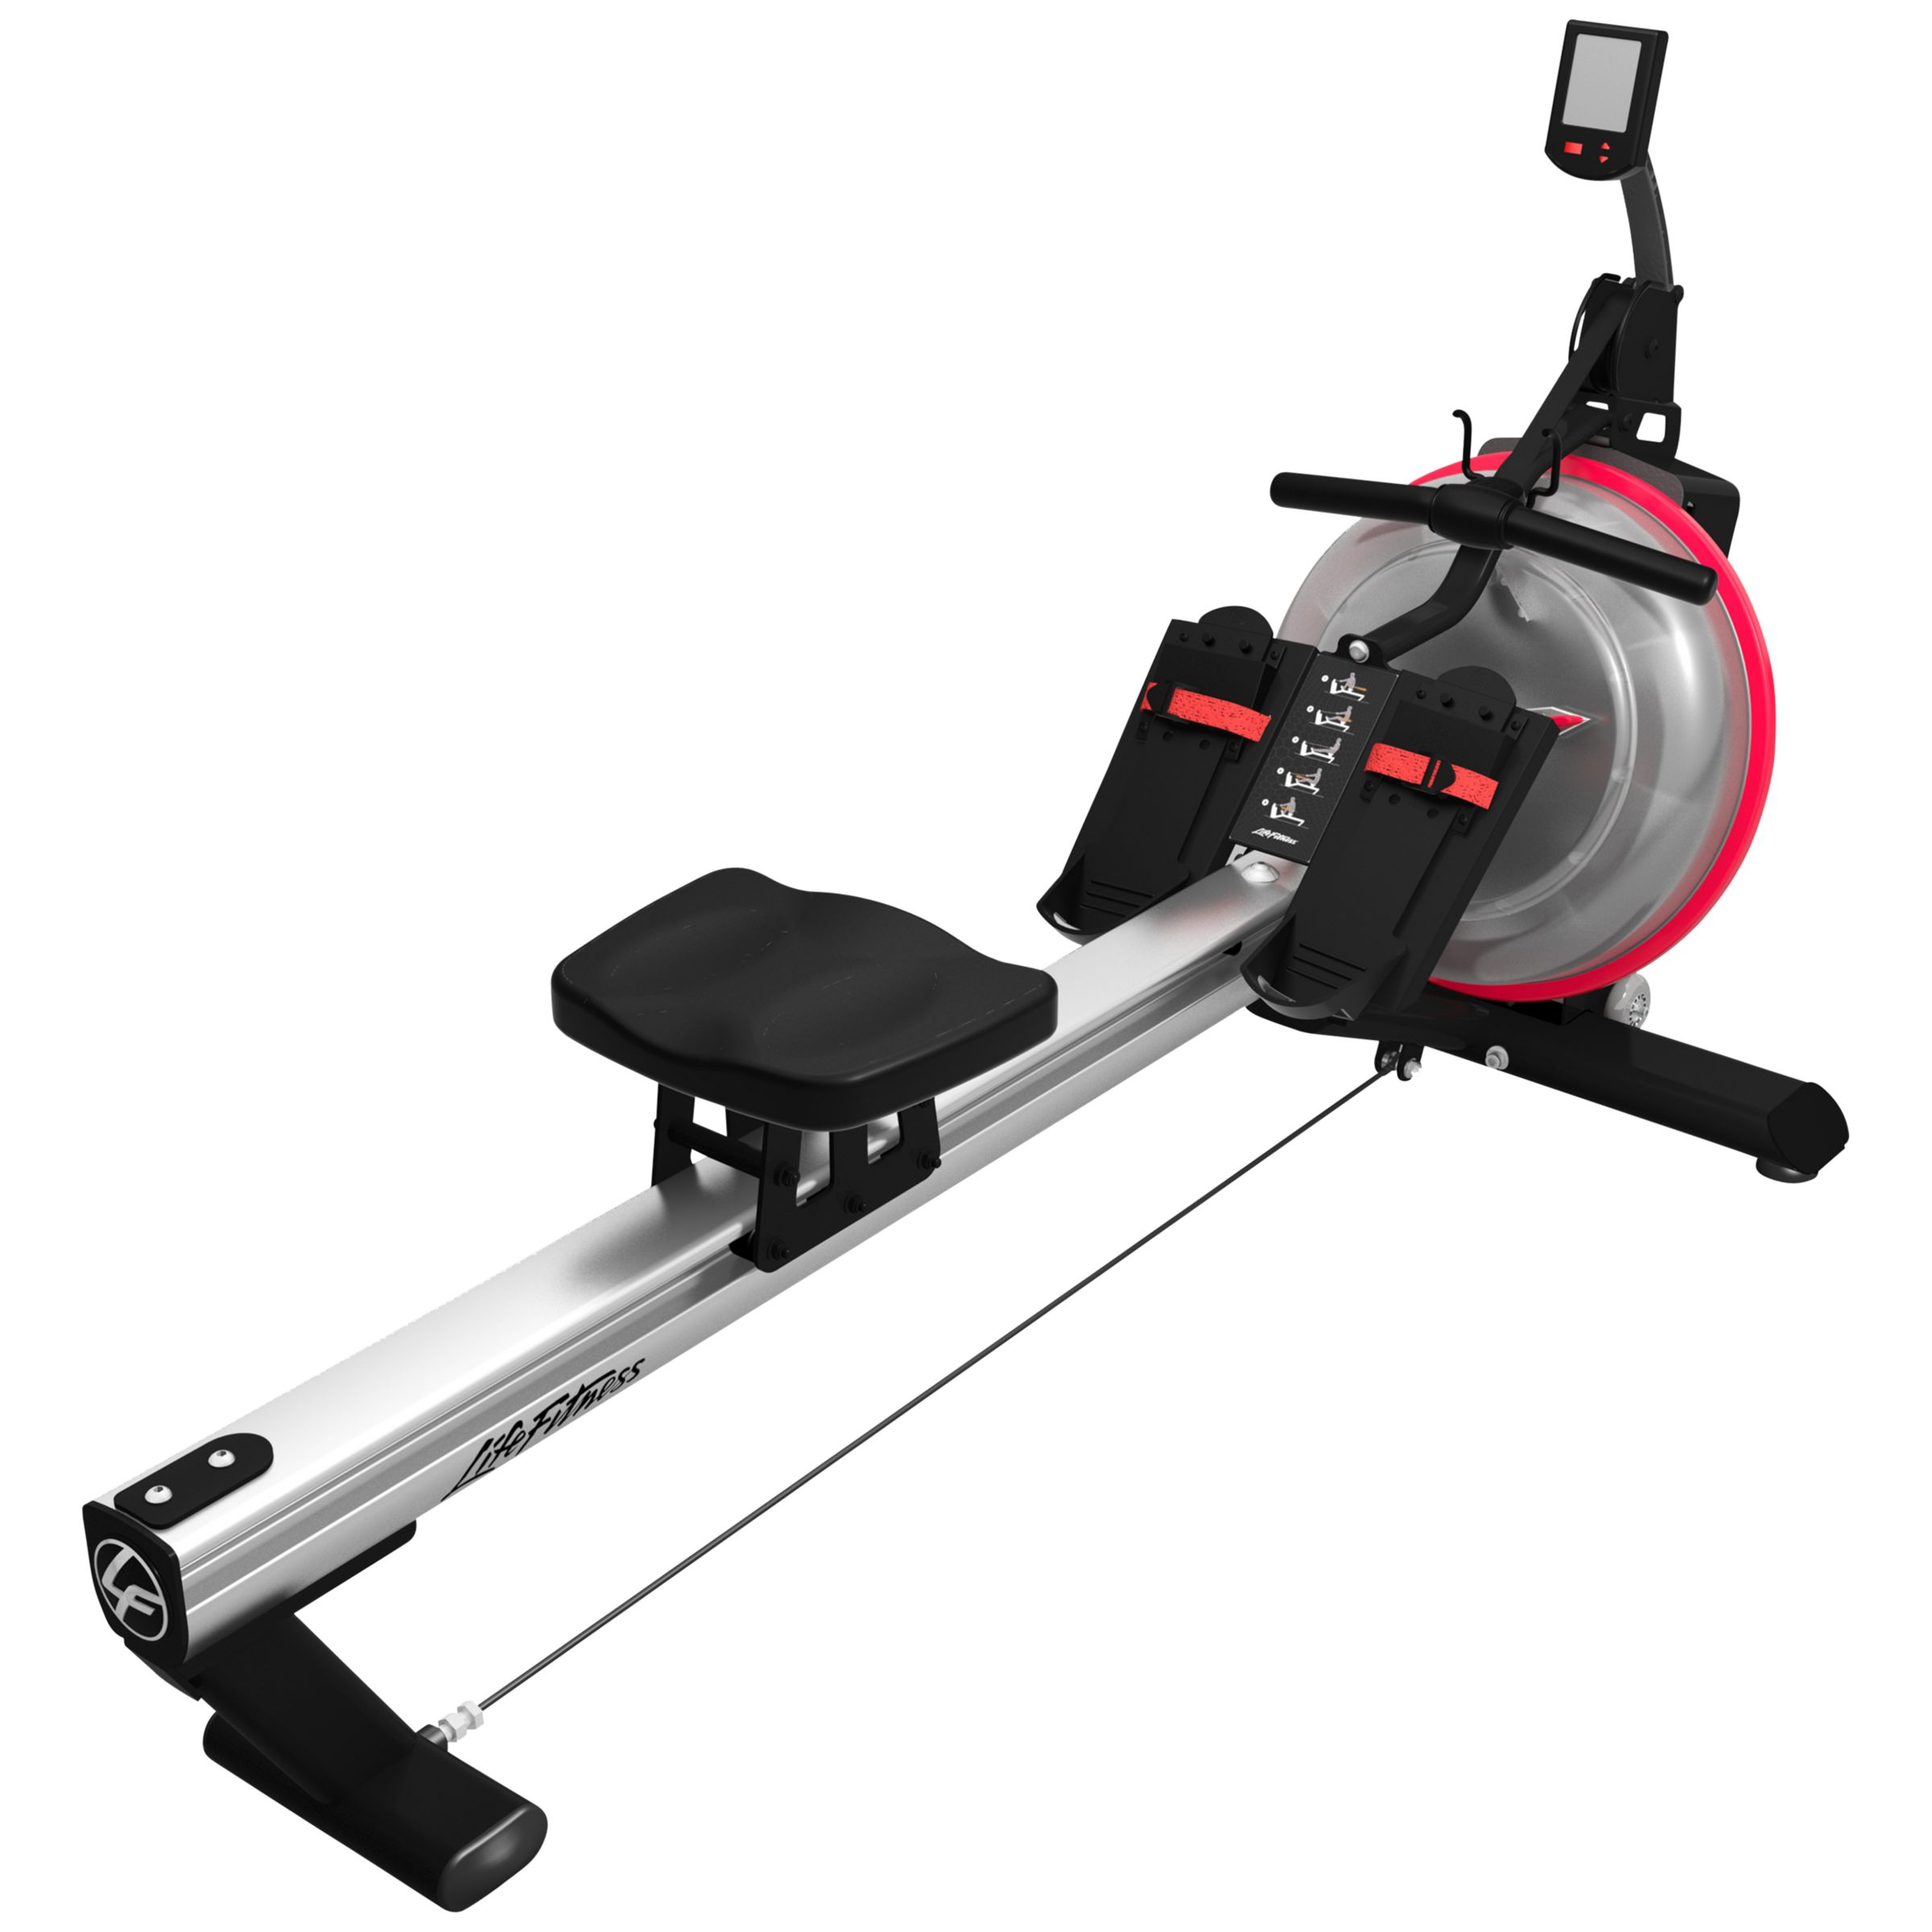 Life Fitness Life Fitness Row GX Trainer, Silver/Black/Red